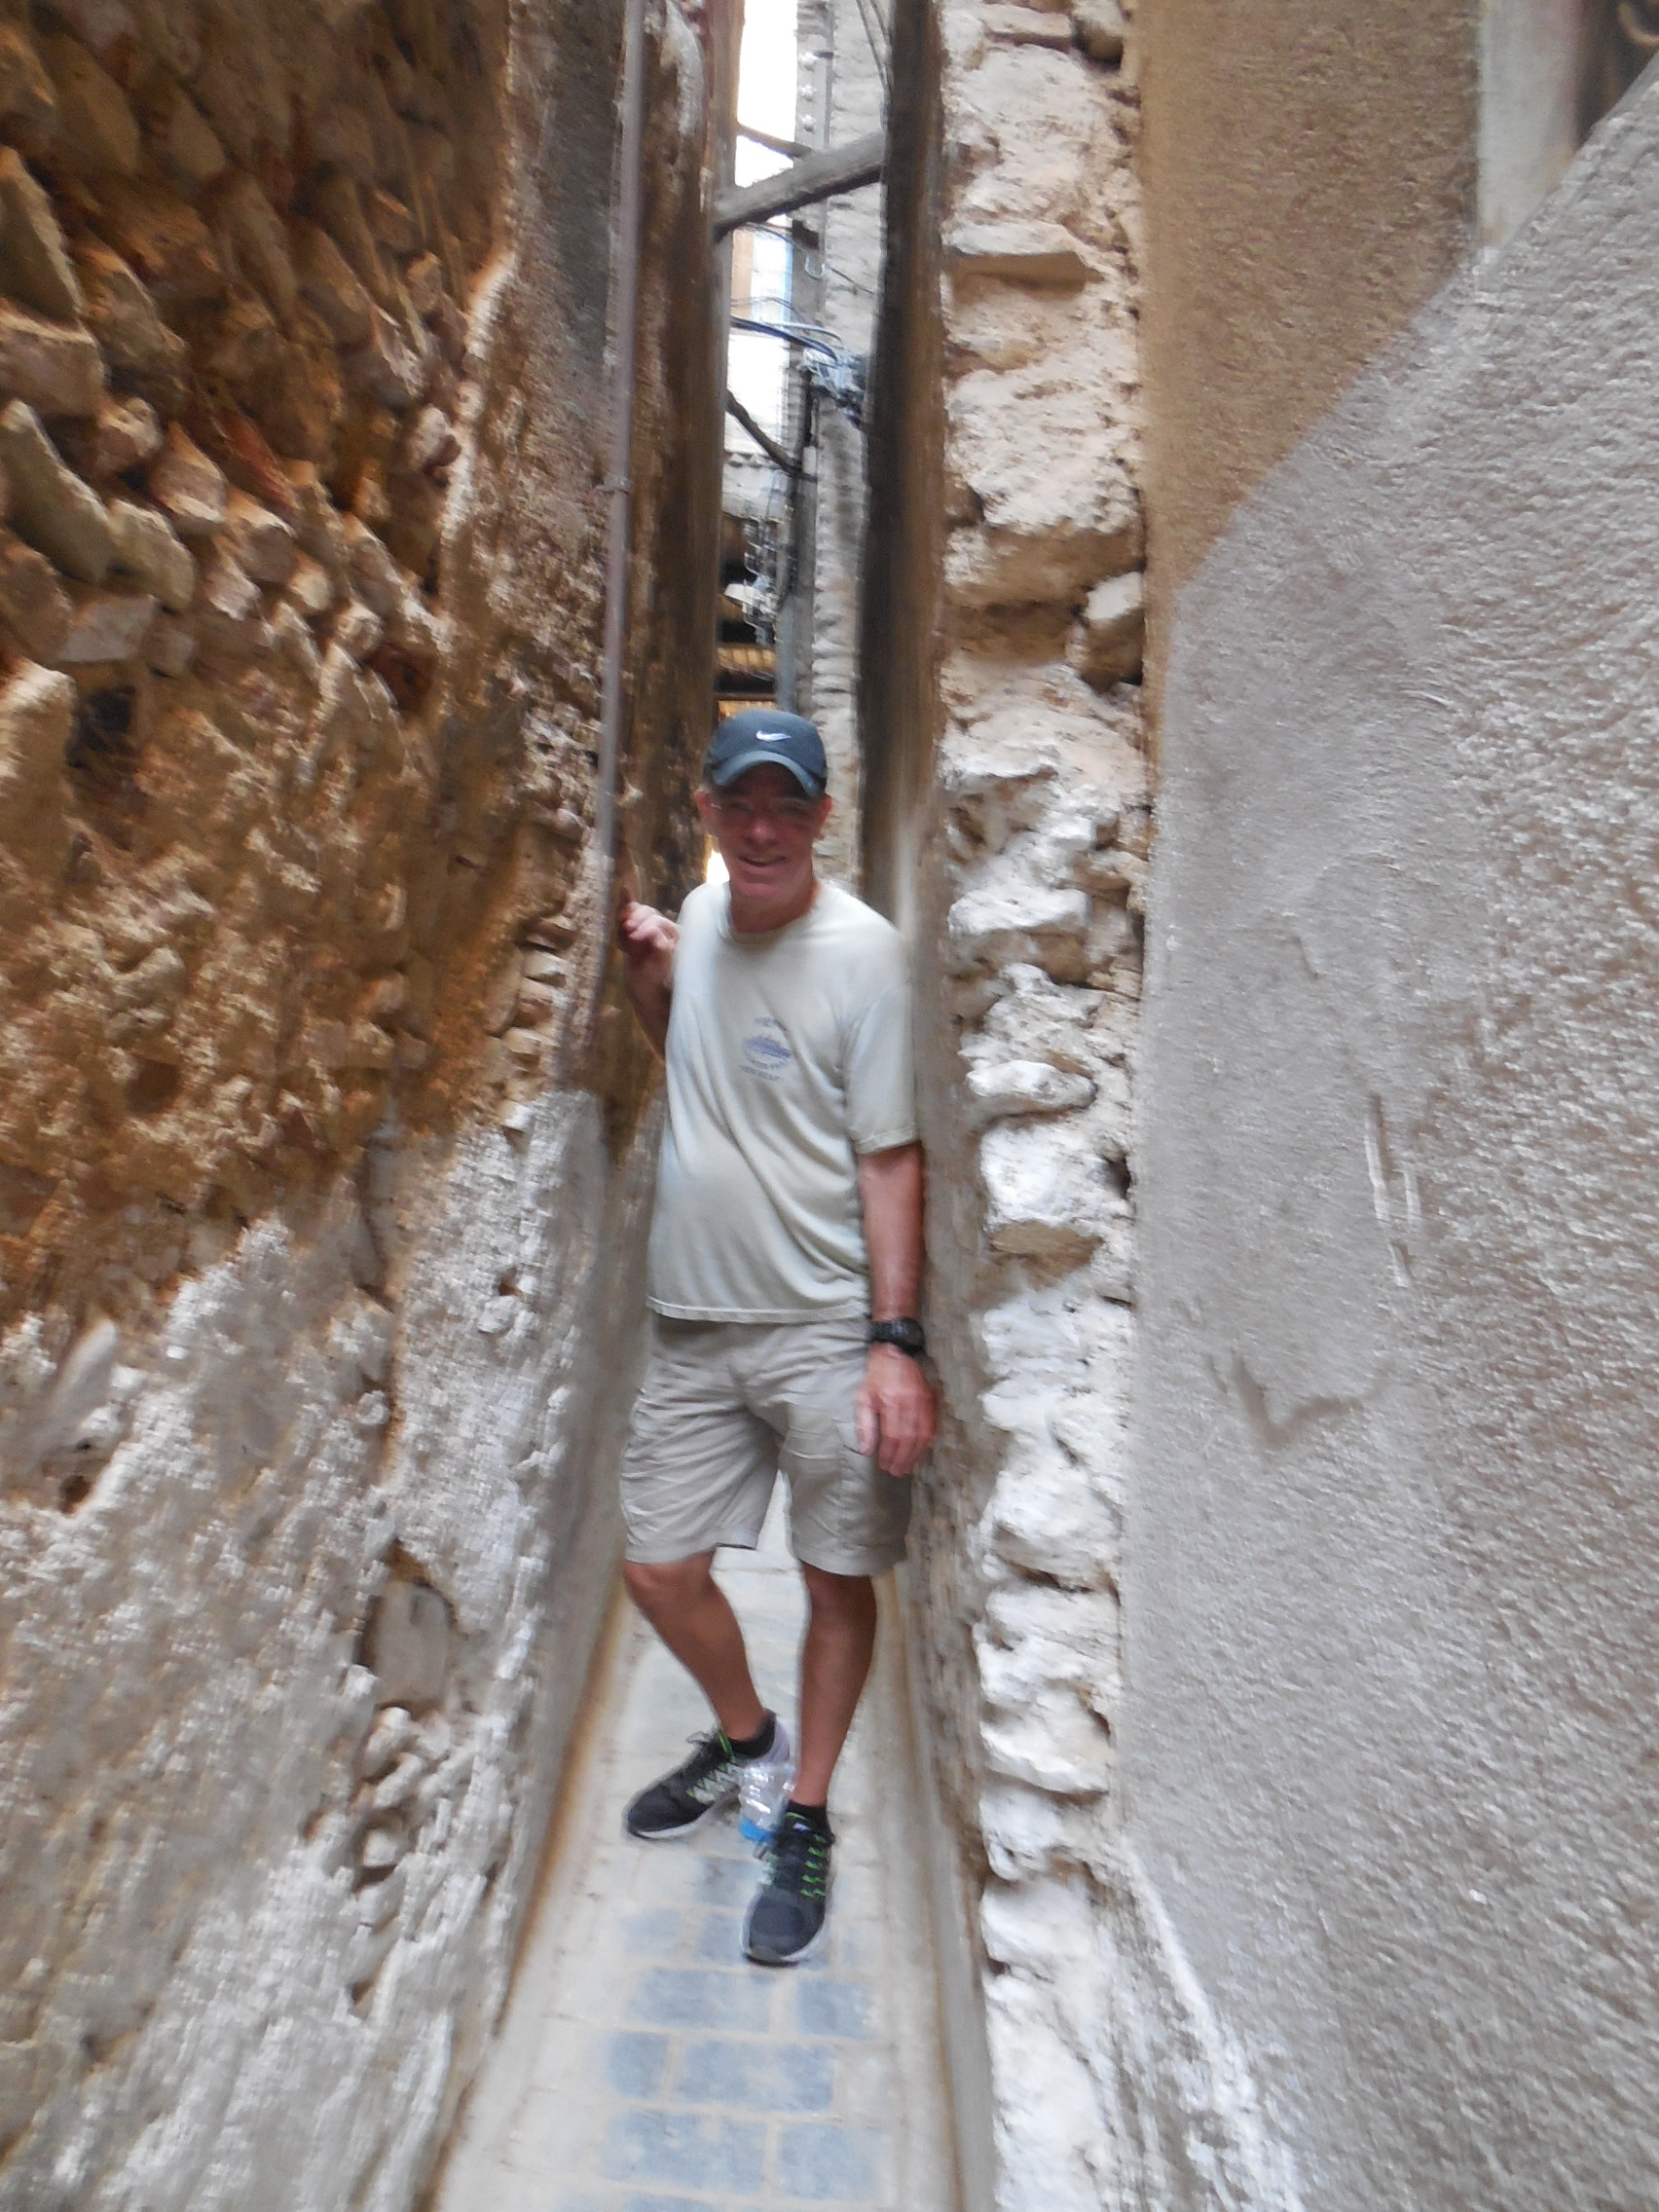 The narrow alleys in Fes' old medina